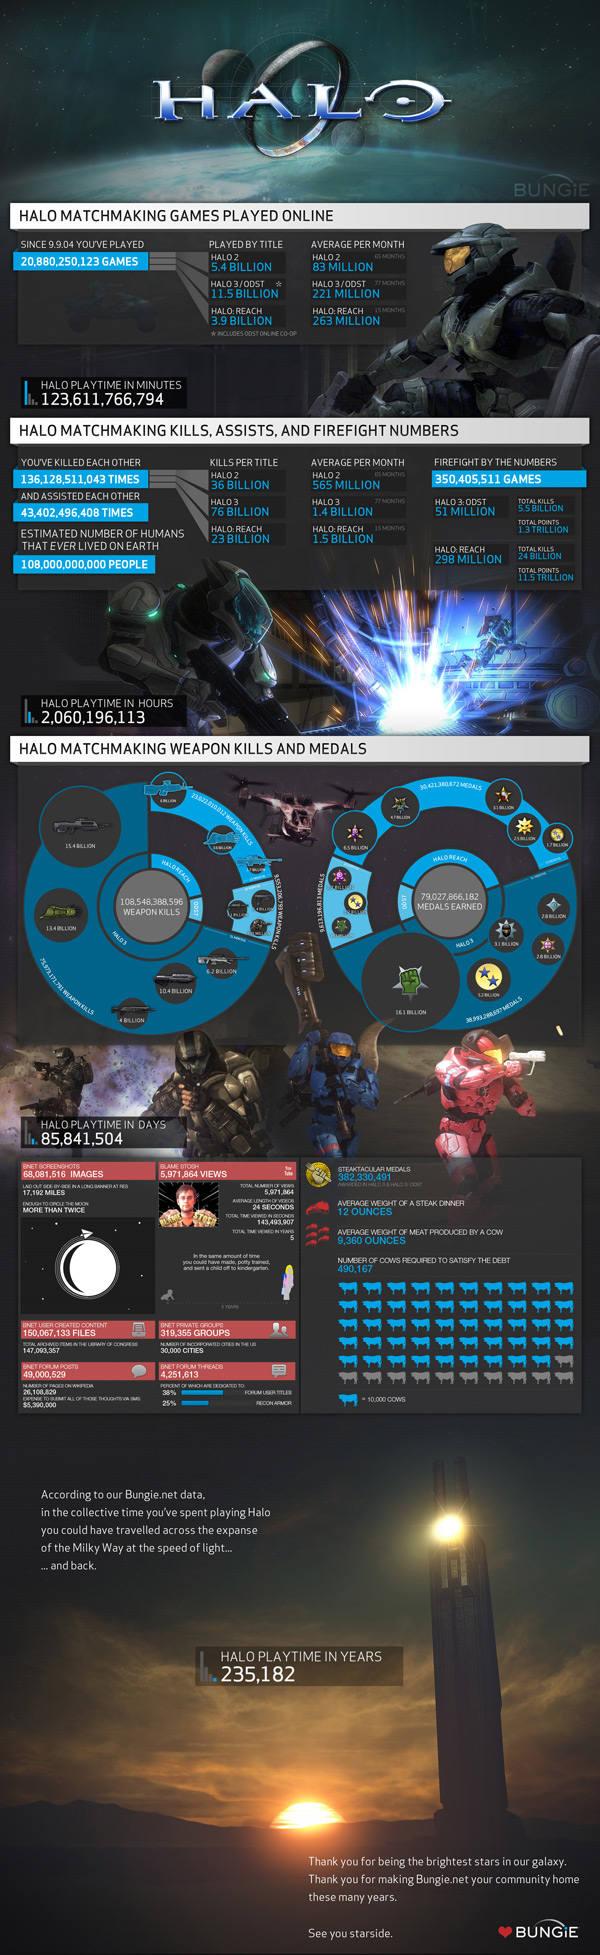 Halo stats from Bungie Software (Xbox, 360, 343, Industries, Reach)